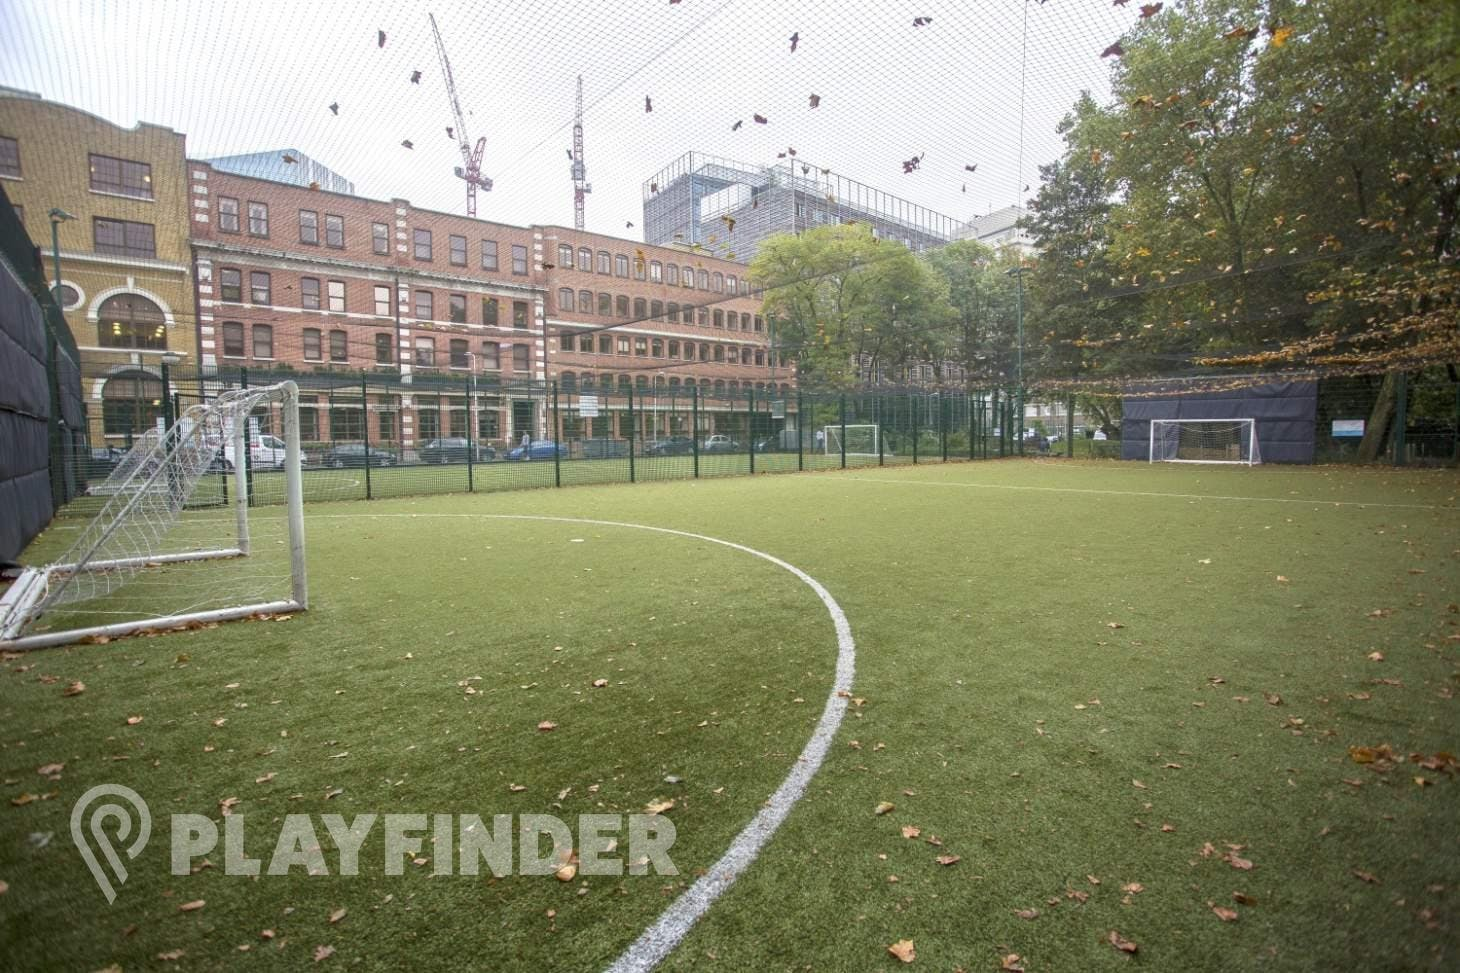 Colombo Centre 7 a side   3G Astroturf football pitch